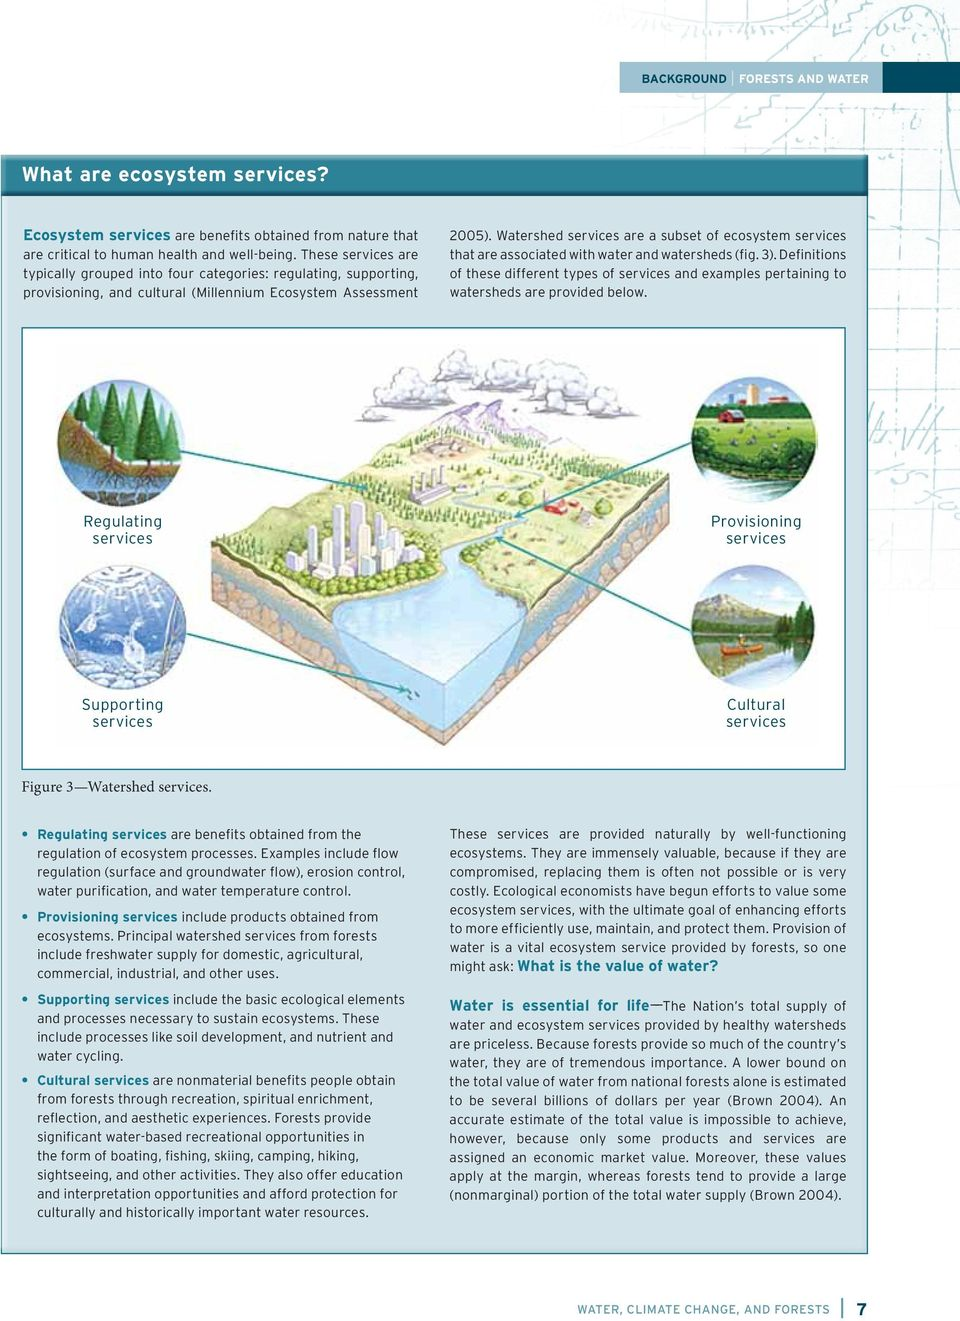 Watershed services are a subset of ecosystem services that are associated with water and watersheds (fig. 3).